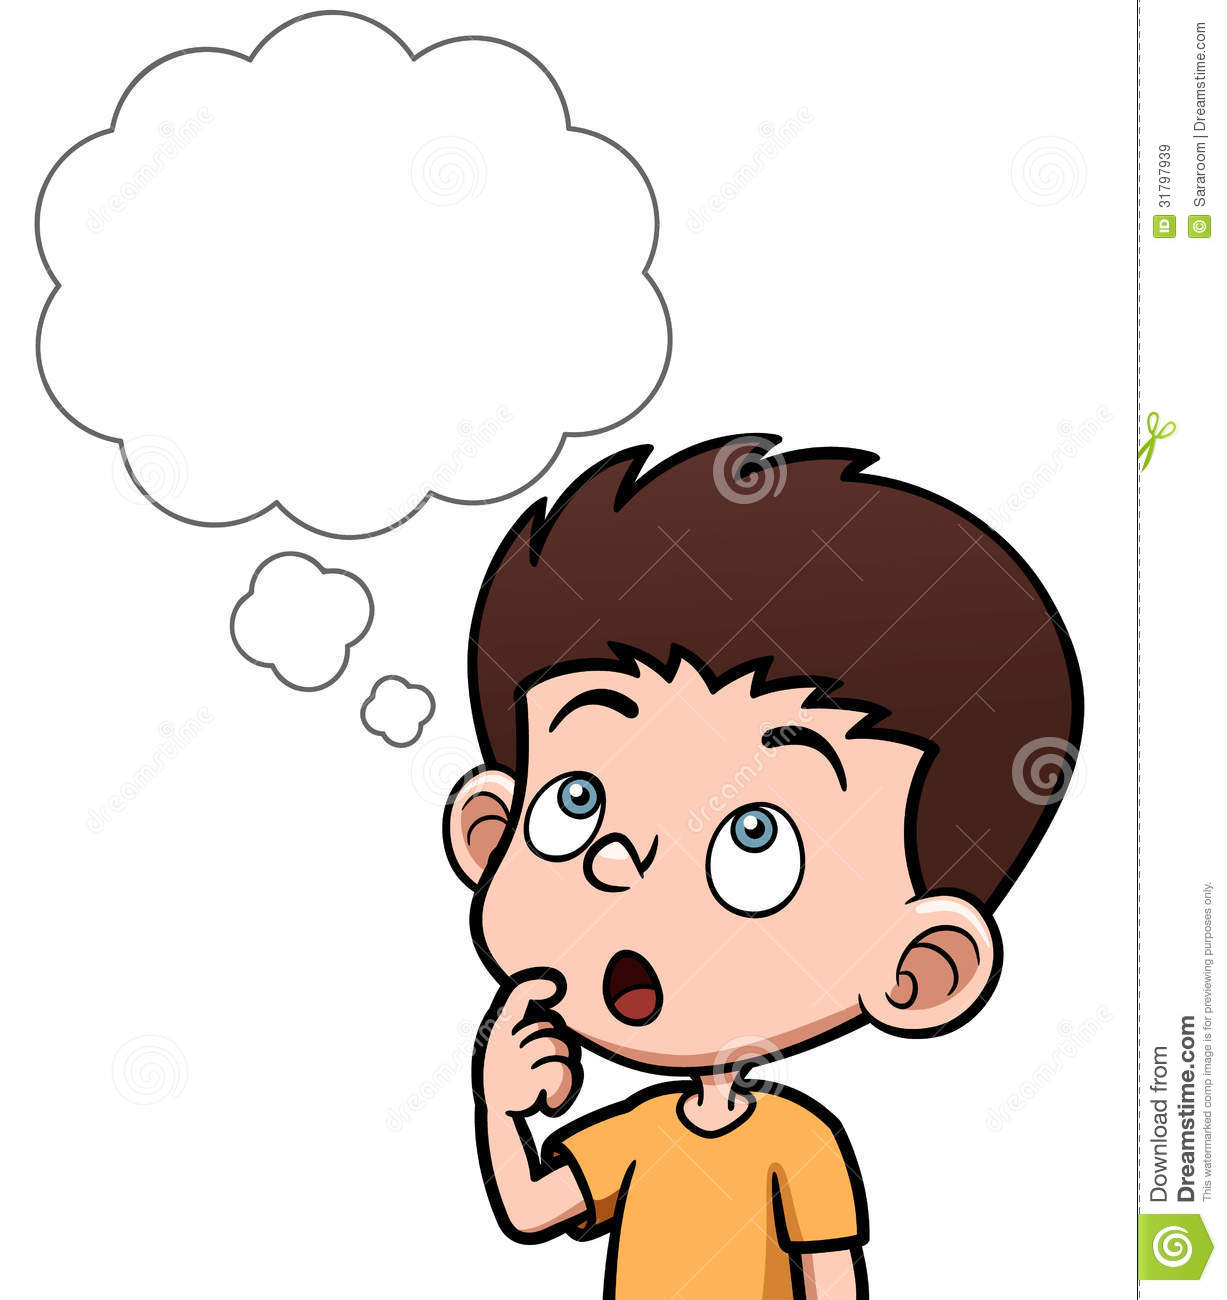 Animated Thinking Bubble Clipart - Clipart Kid